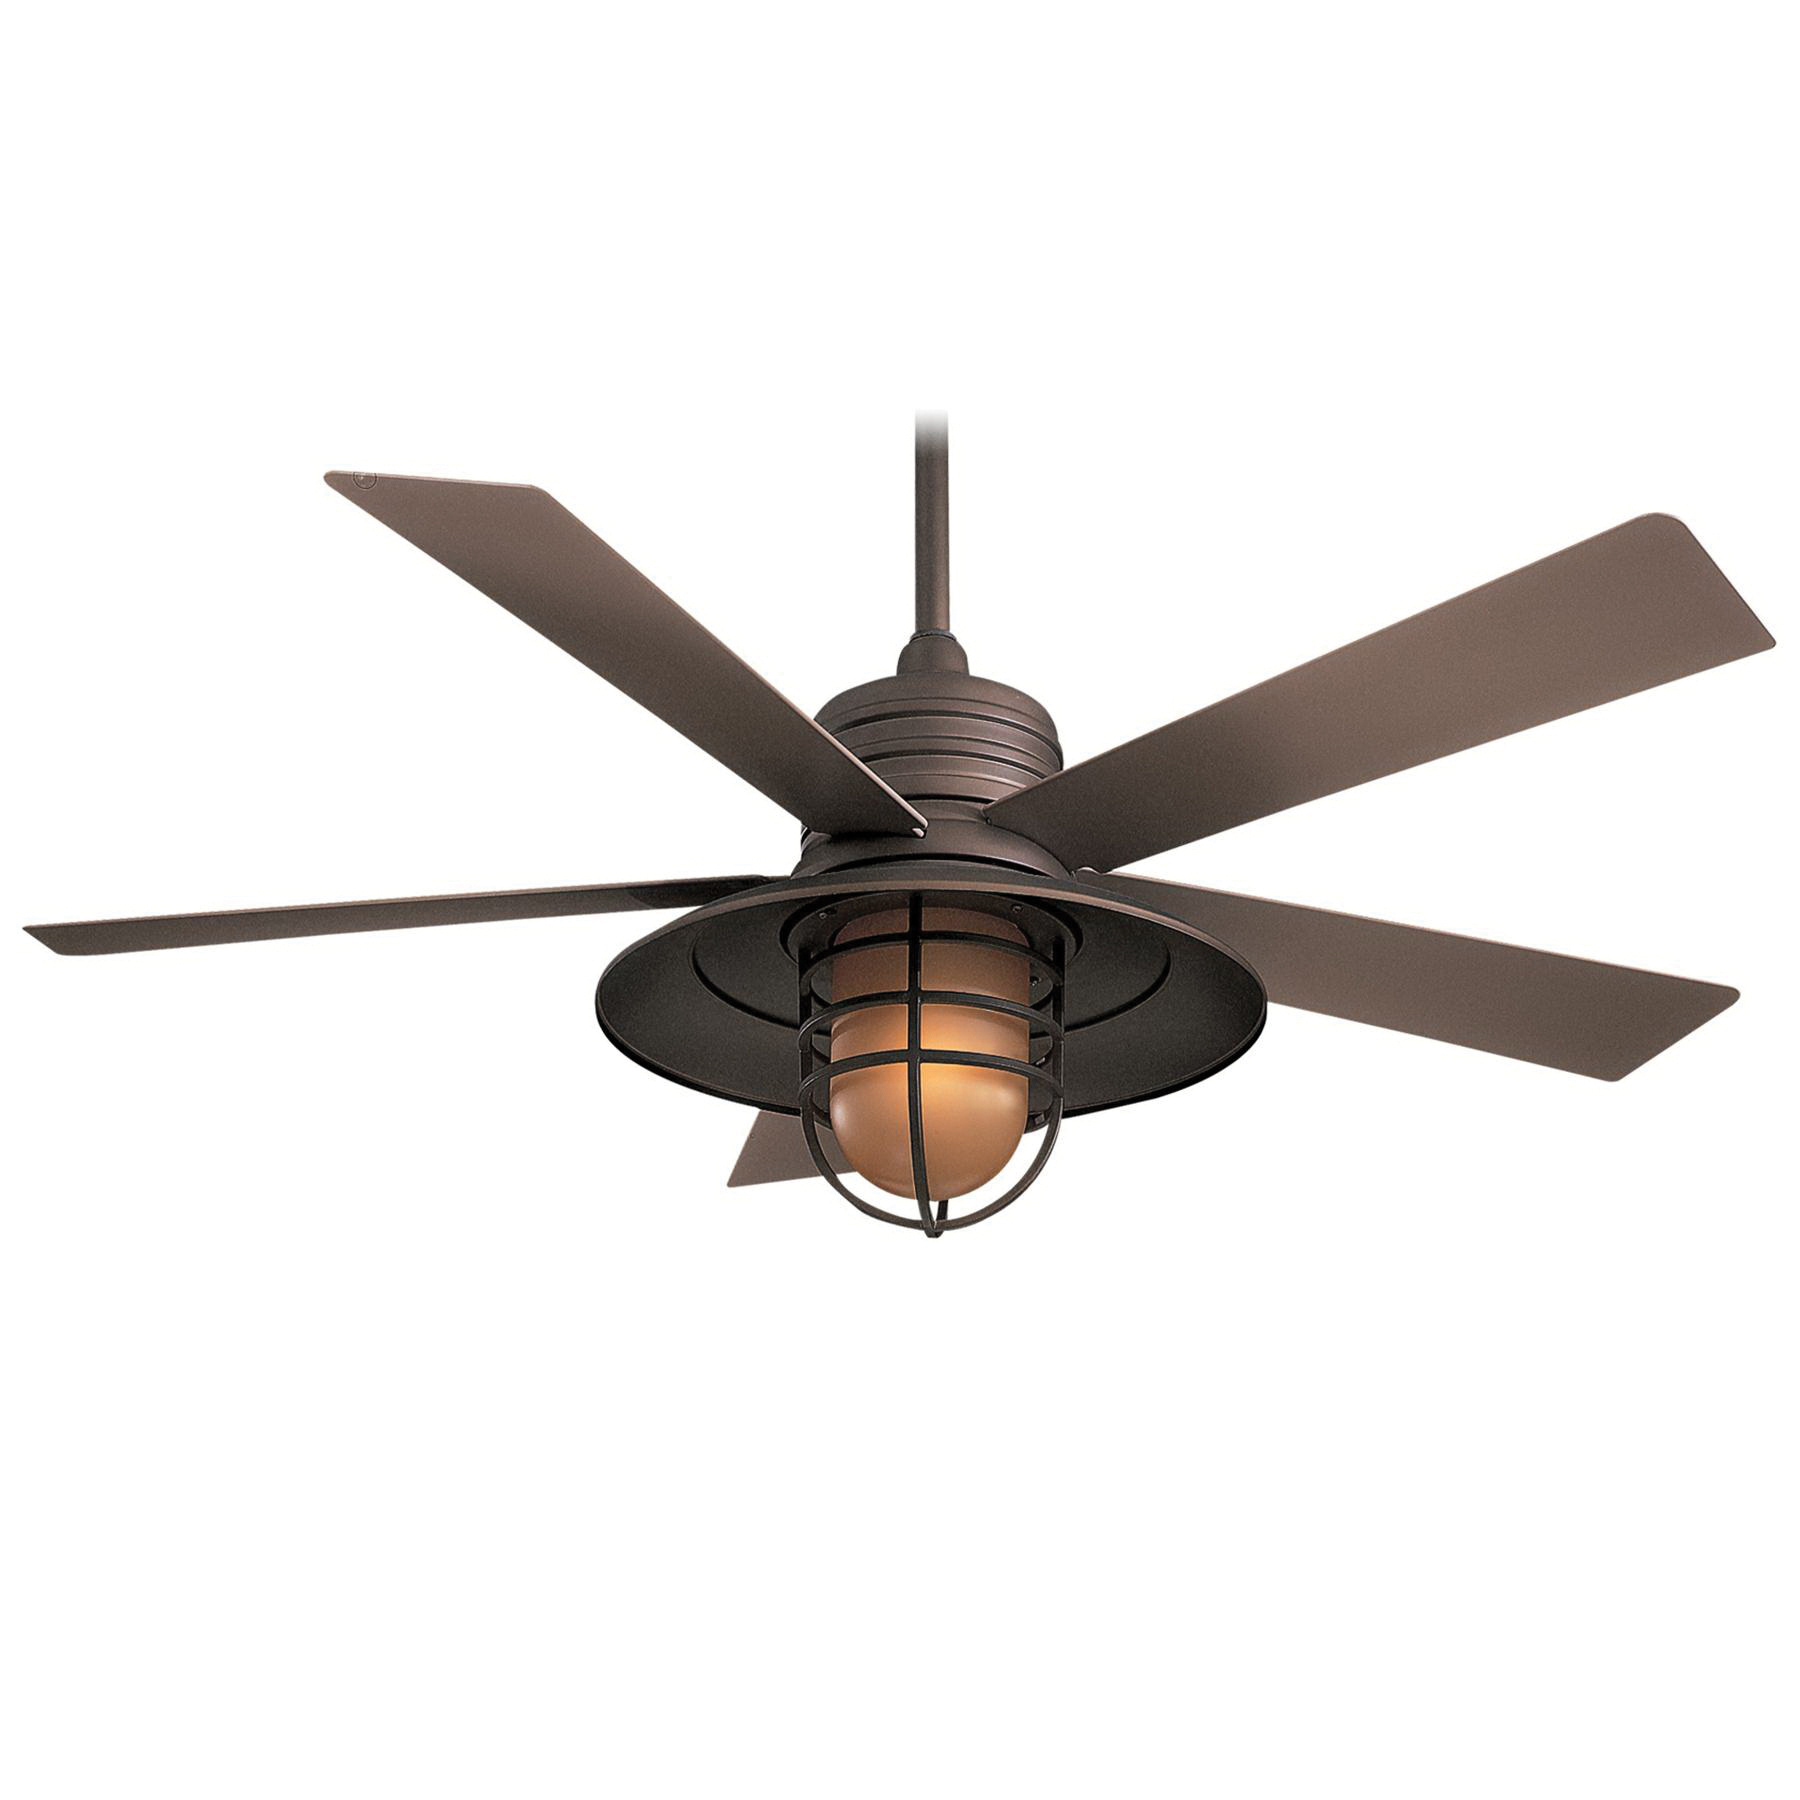 Minka-Aire F582-ORB Transitional Ceiling Fan With Light 54 Inch 5 Blade 3 Speed Oil Rubbed Bronze Rainman™